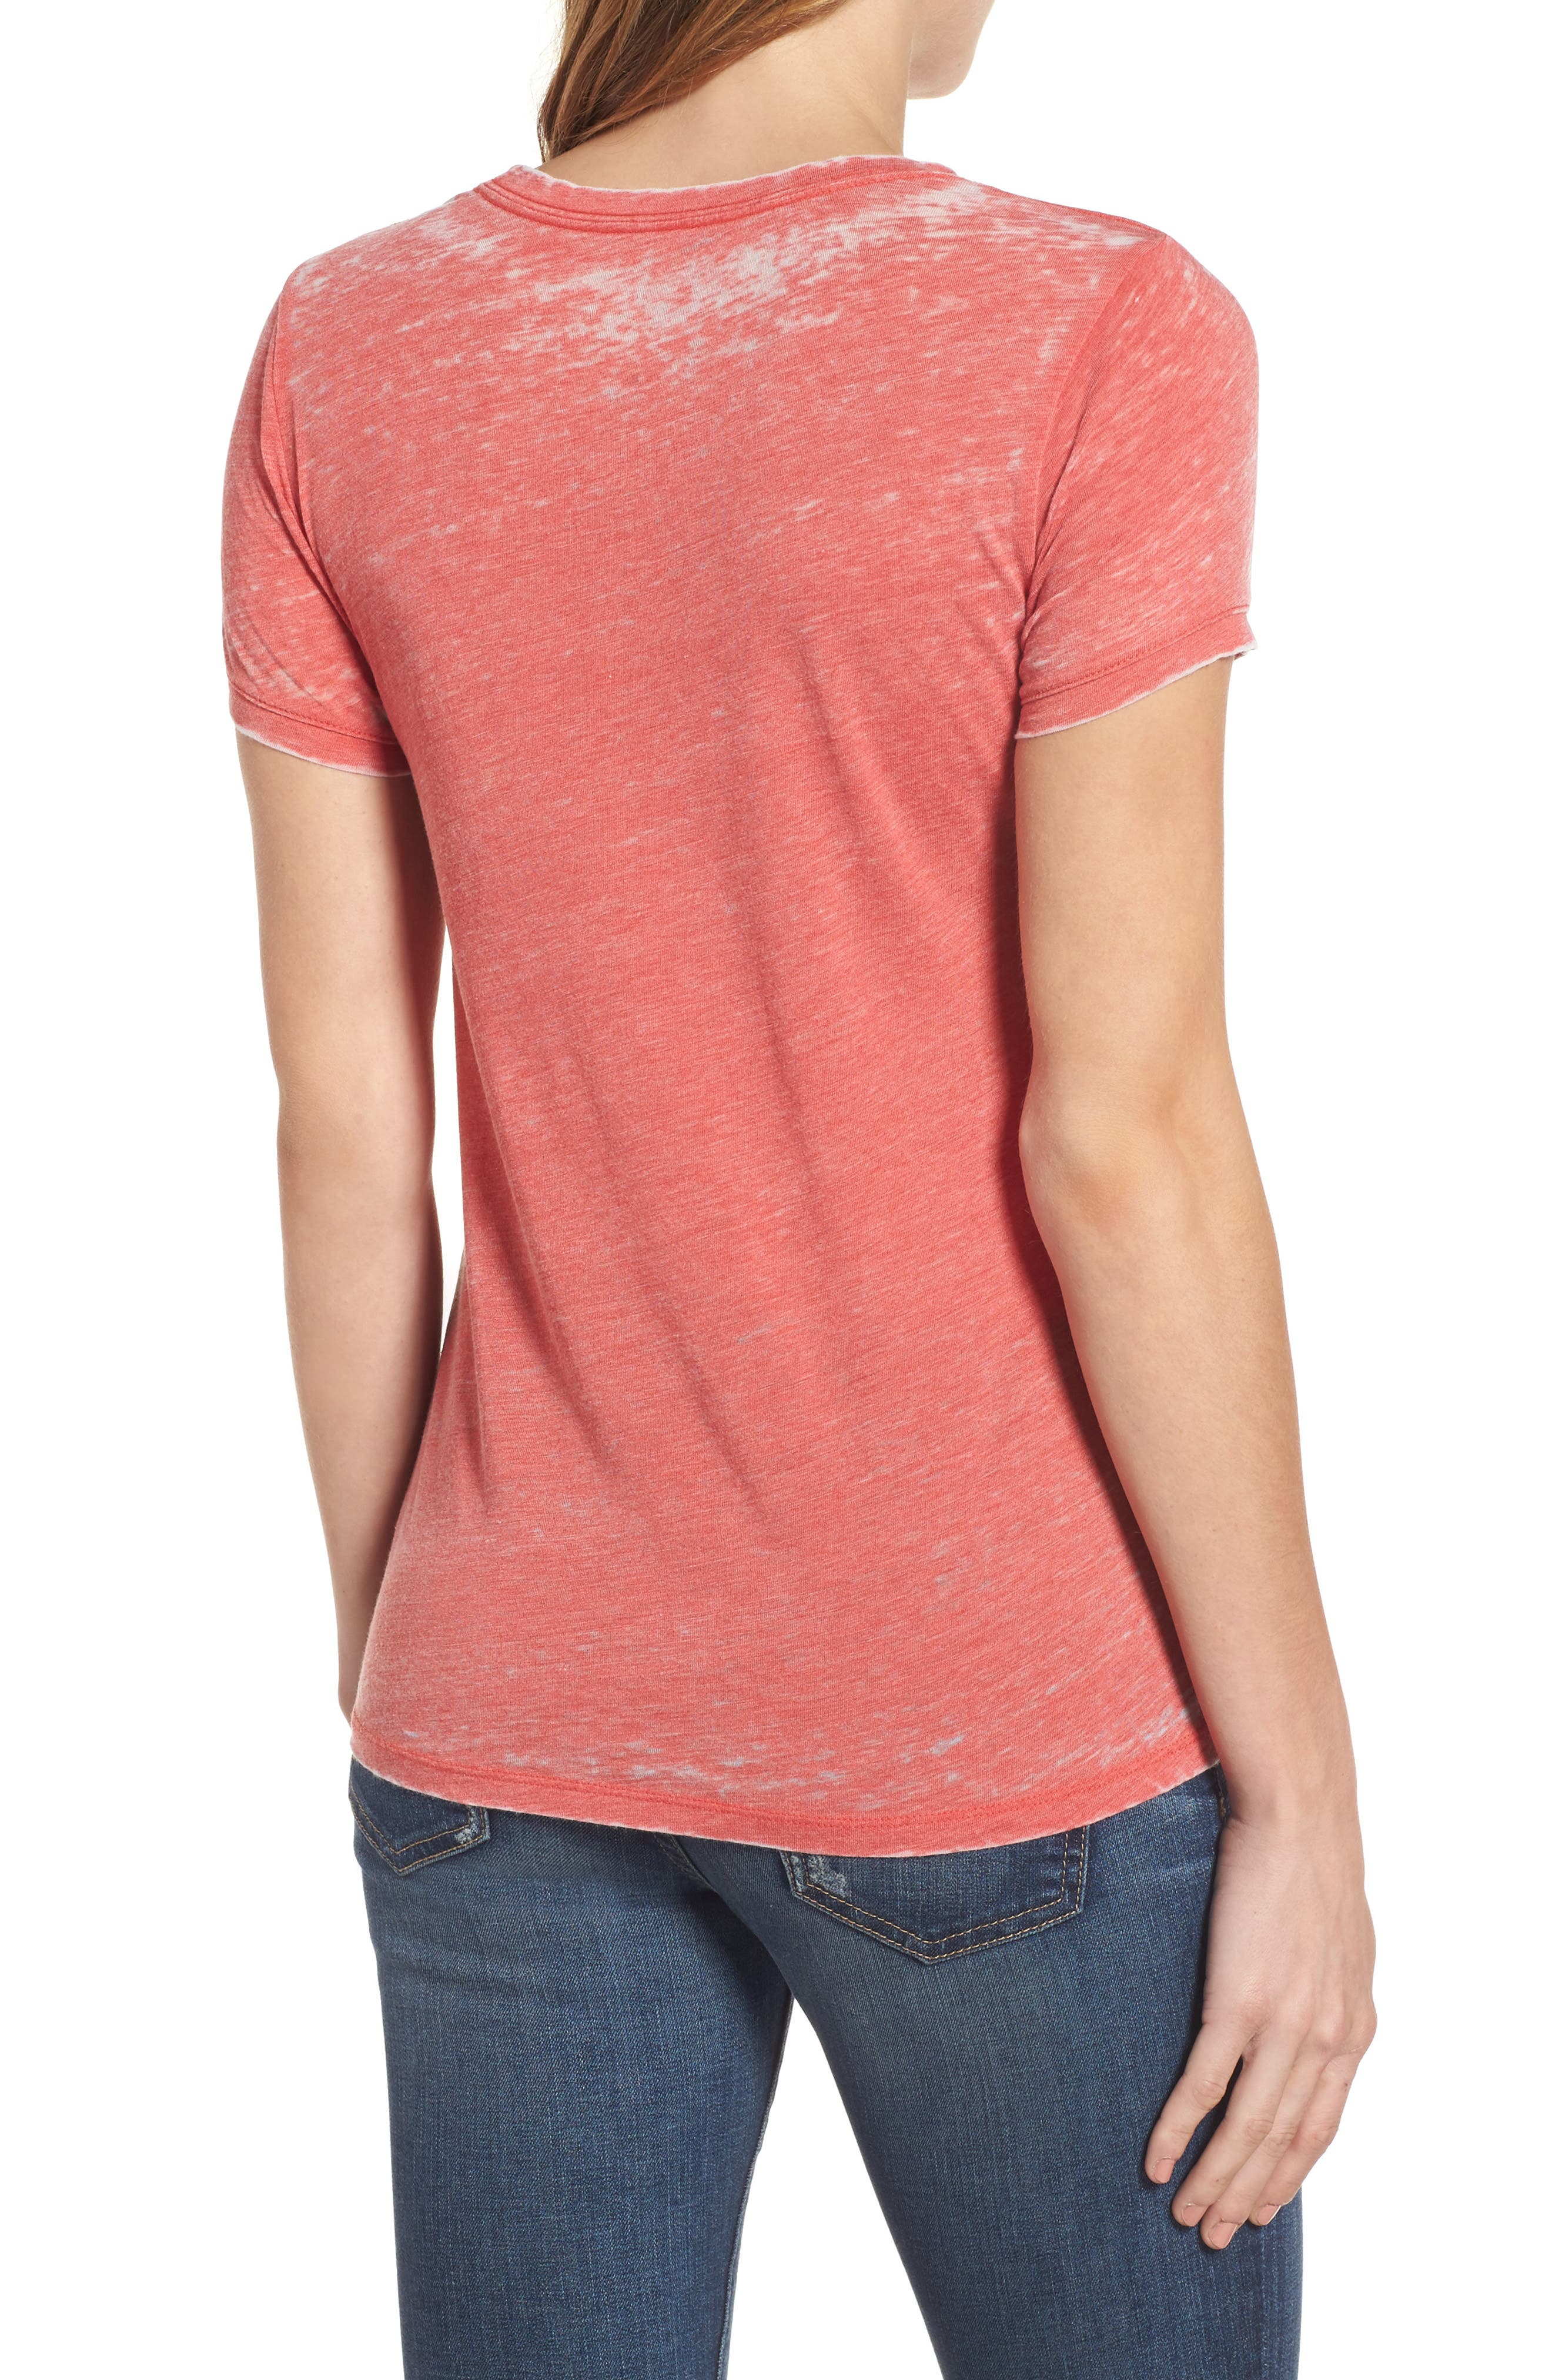 Journey Graphic Tee,                             Alternate thumbnail 2, color,                             640